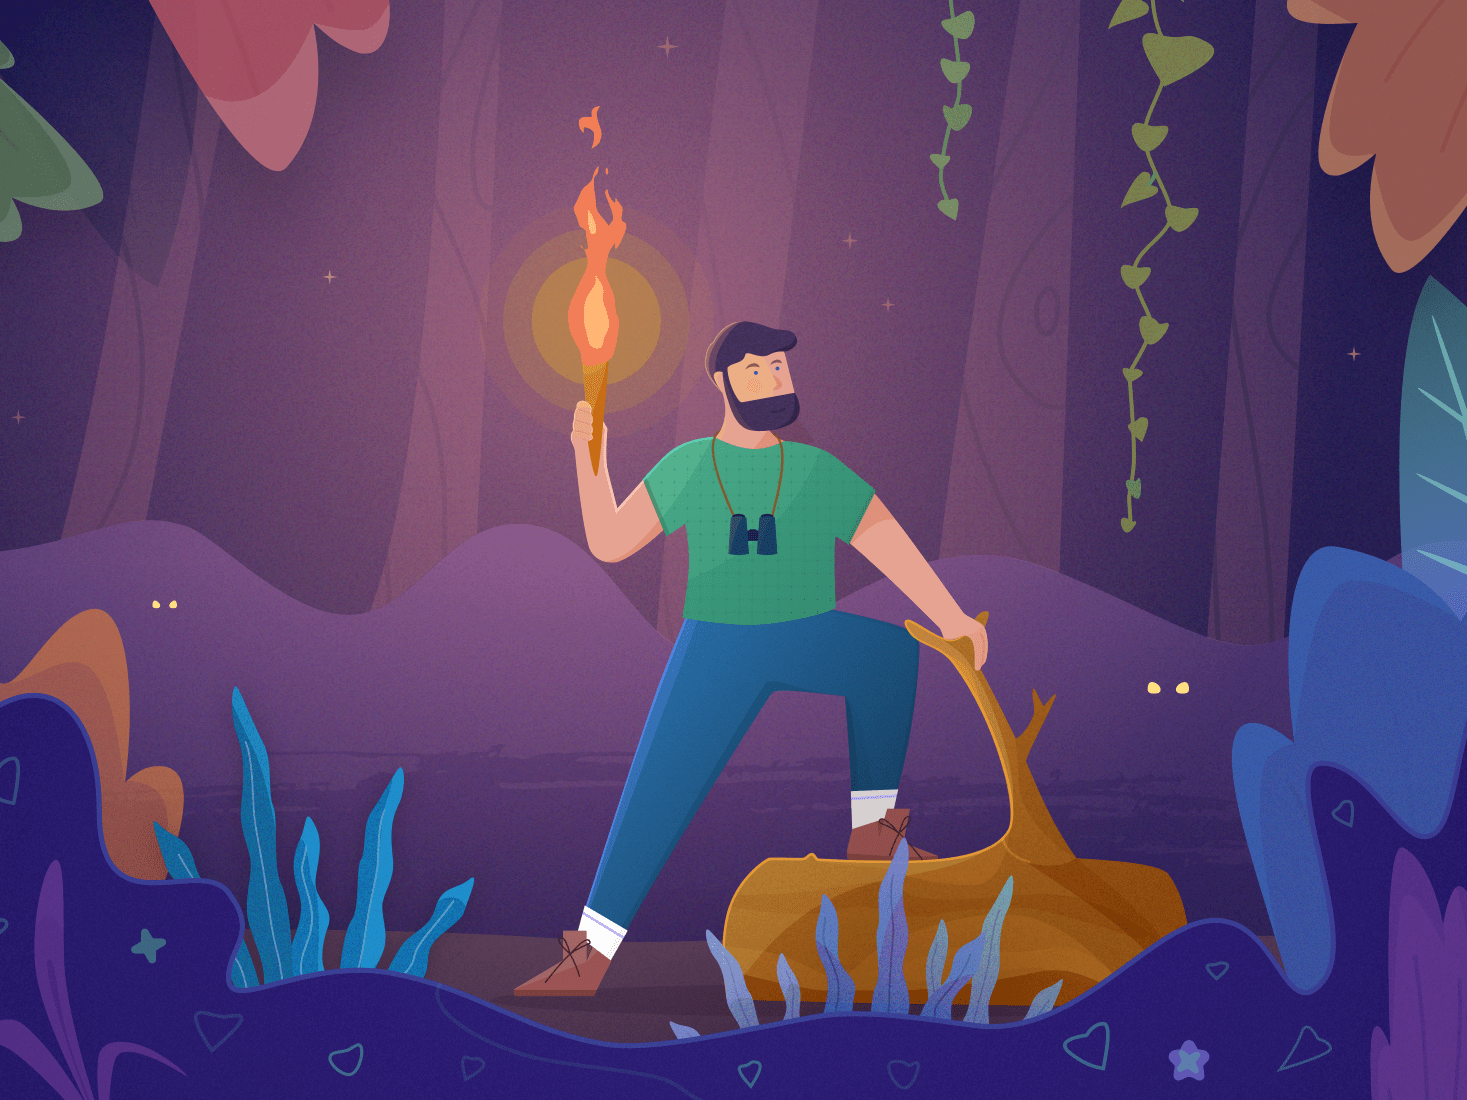 Adventuring in the Forest beard log stump eyes vector illustration night binoculars forests trees woods explore colorful flame plants jungle man fire advenure forest